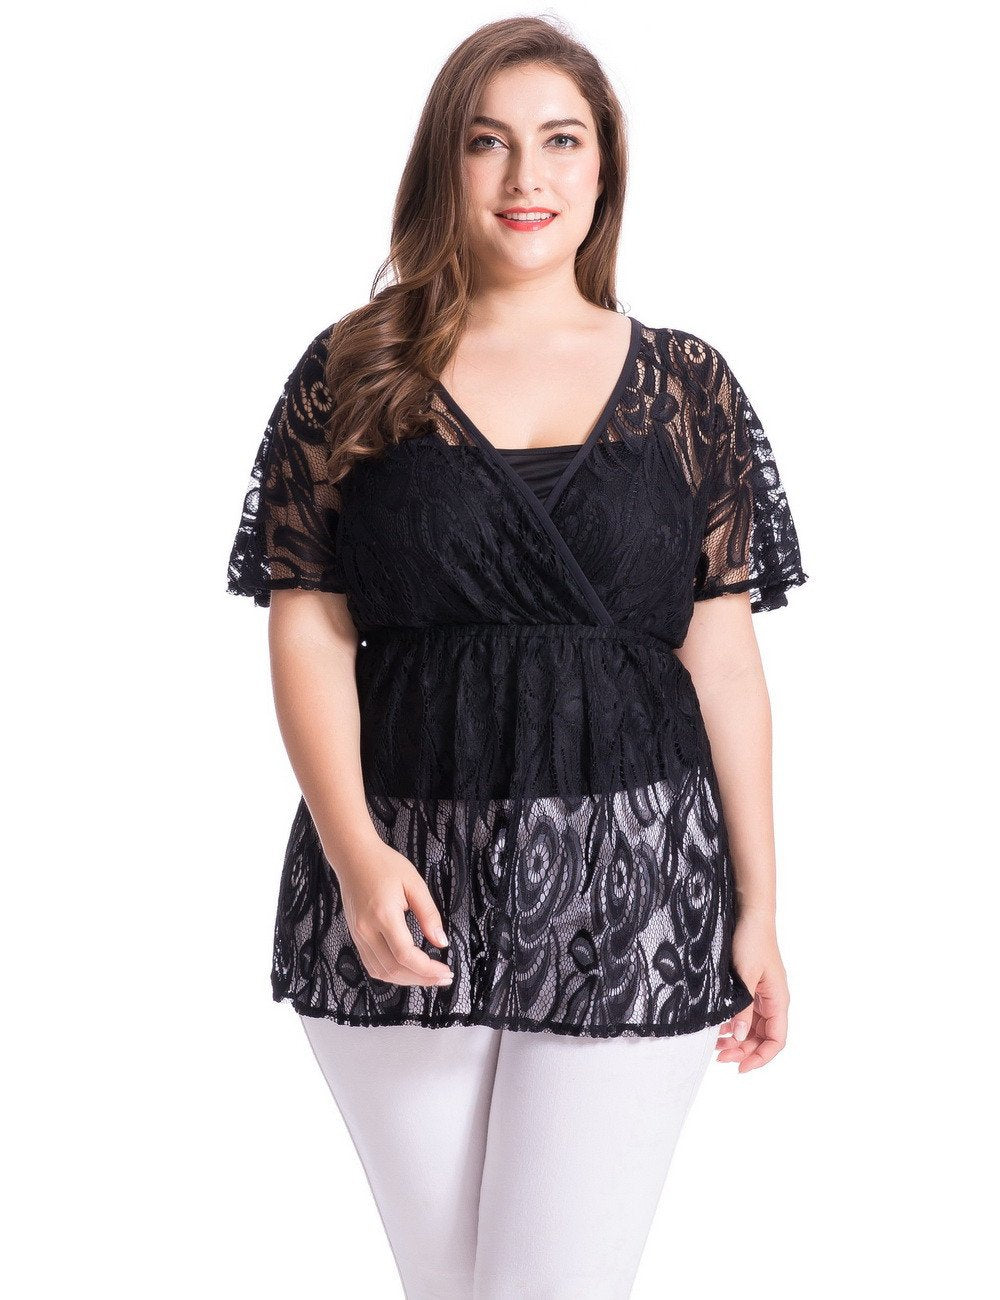 Chicwe Women's Plus Size Floral Lace Top Blouse with Jersey Cami 1X-4X